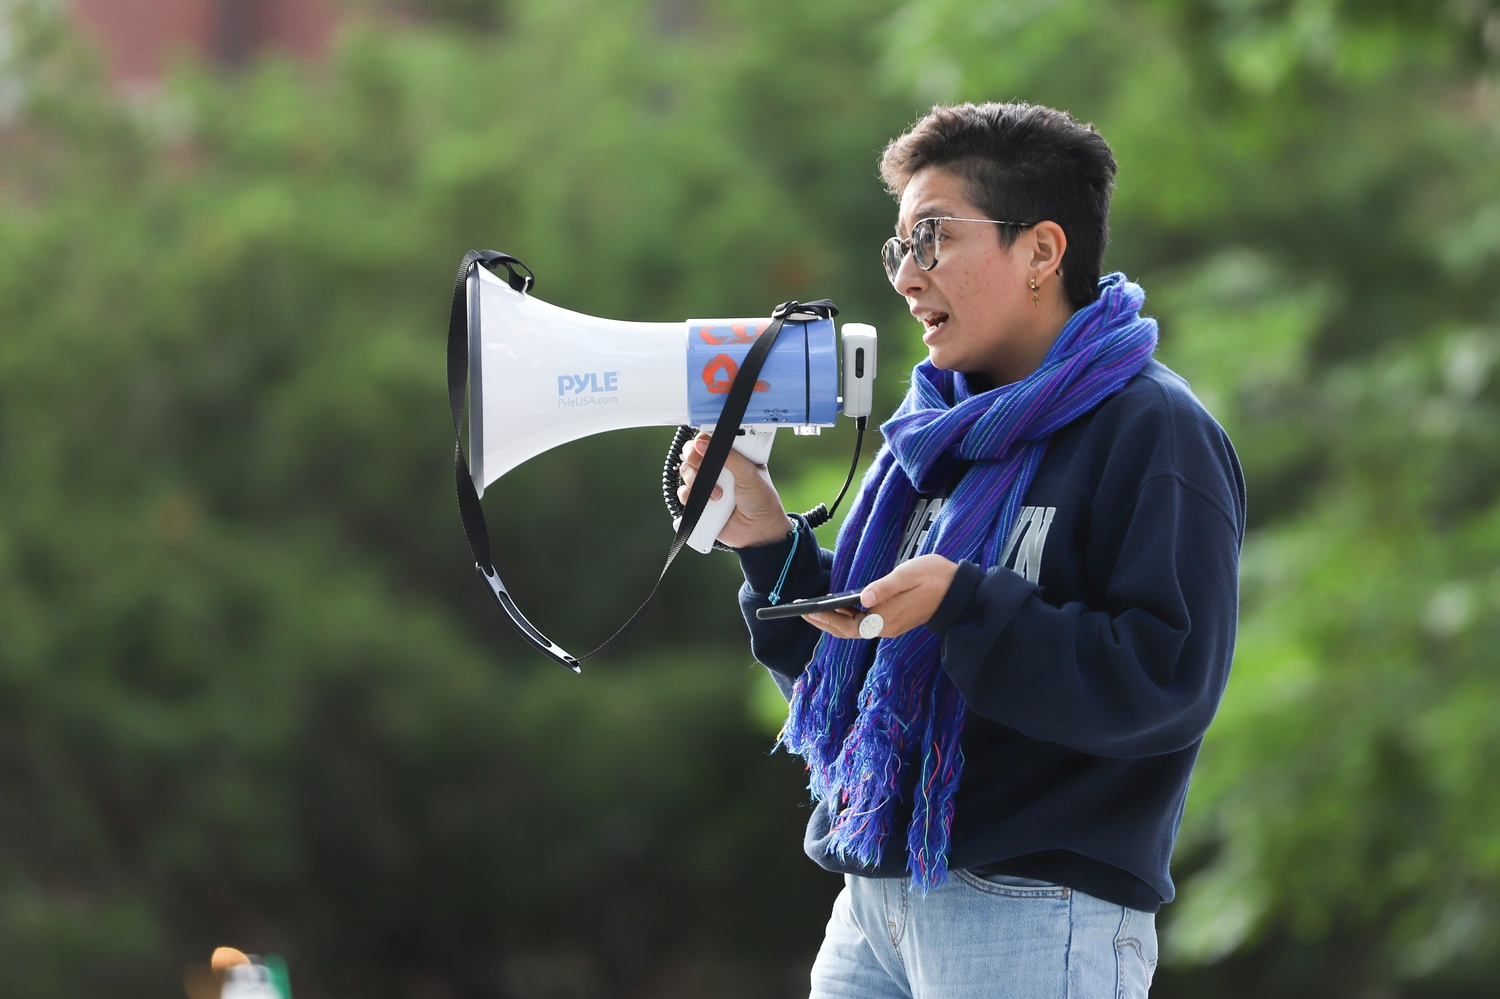 Ph.D. student Xitlalli Alvarez spoke in favor of divesting from private prisons at the rally Thursday.